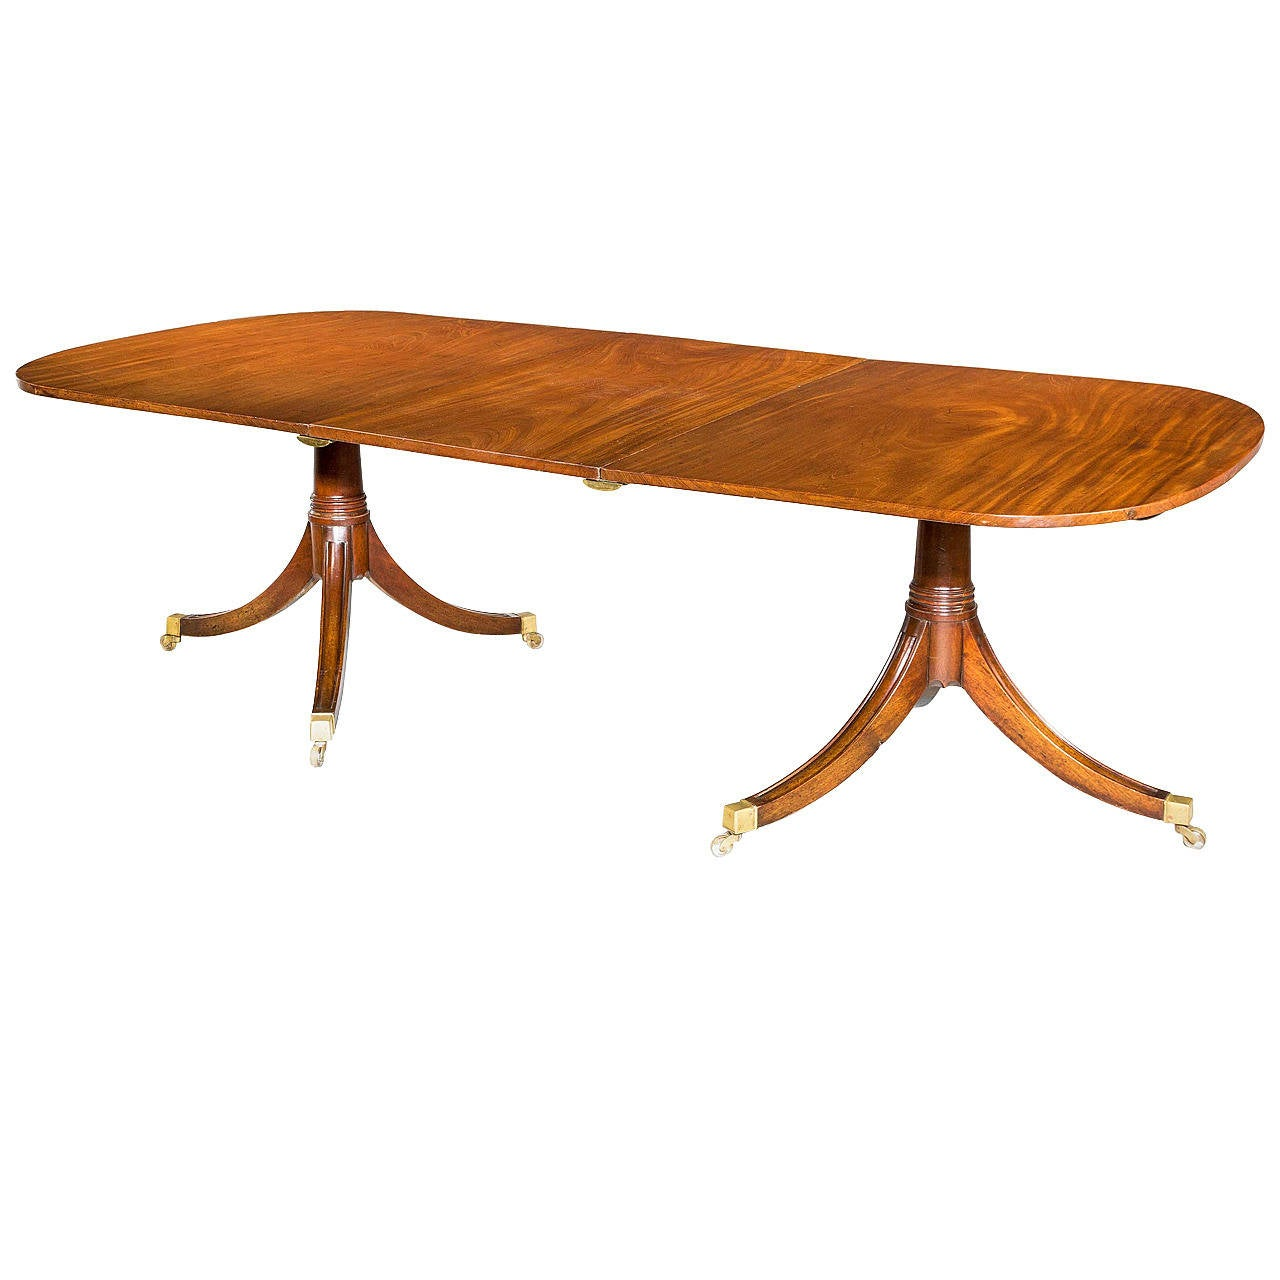 Early 20th century two pillar dining table for sale at 1stdibs for Pillar dining table